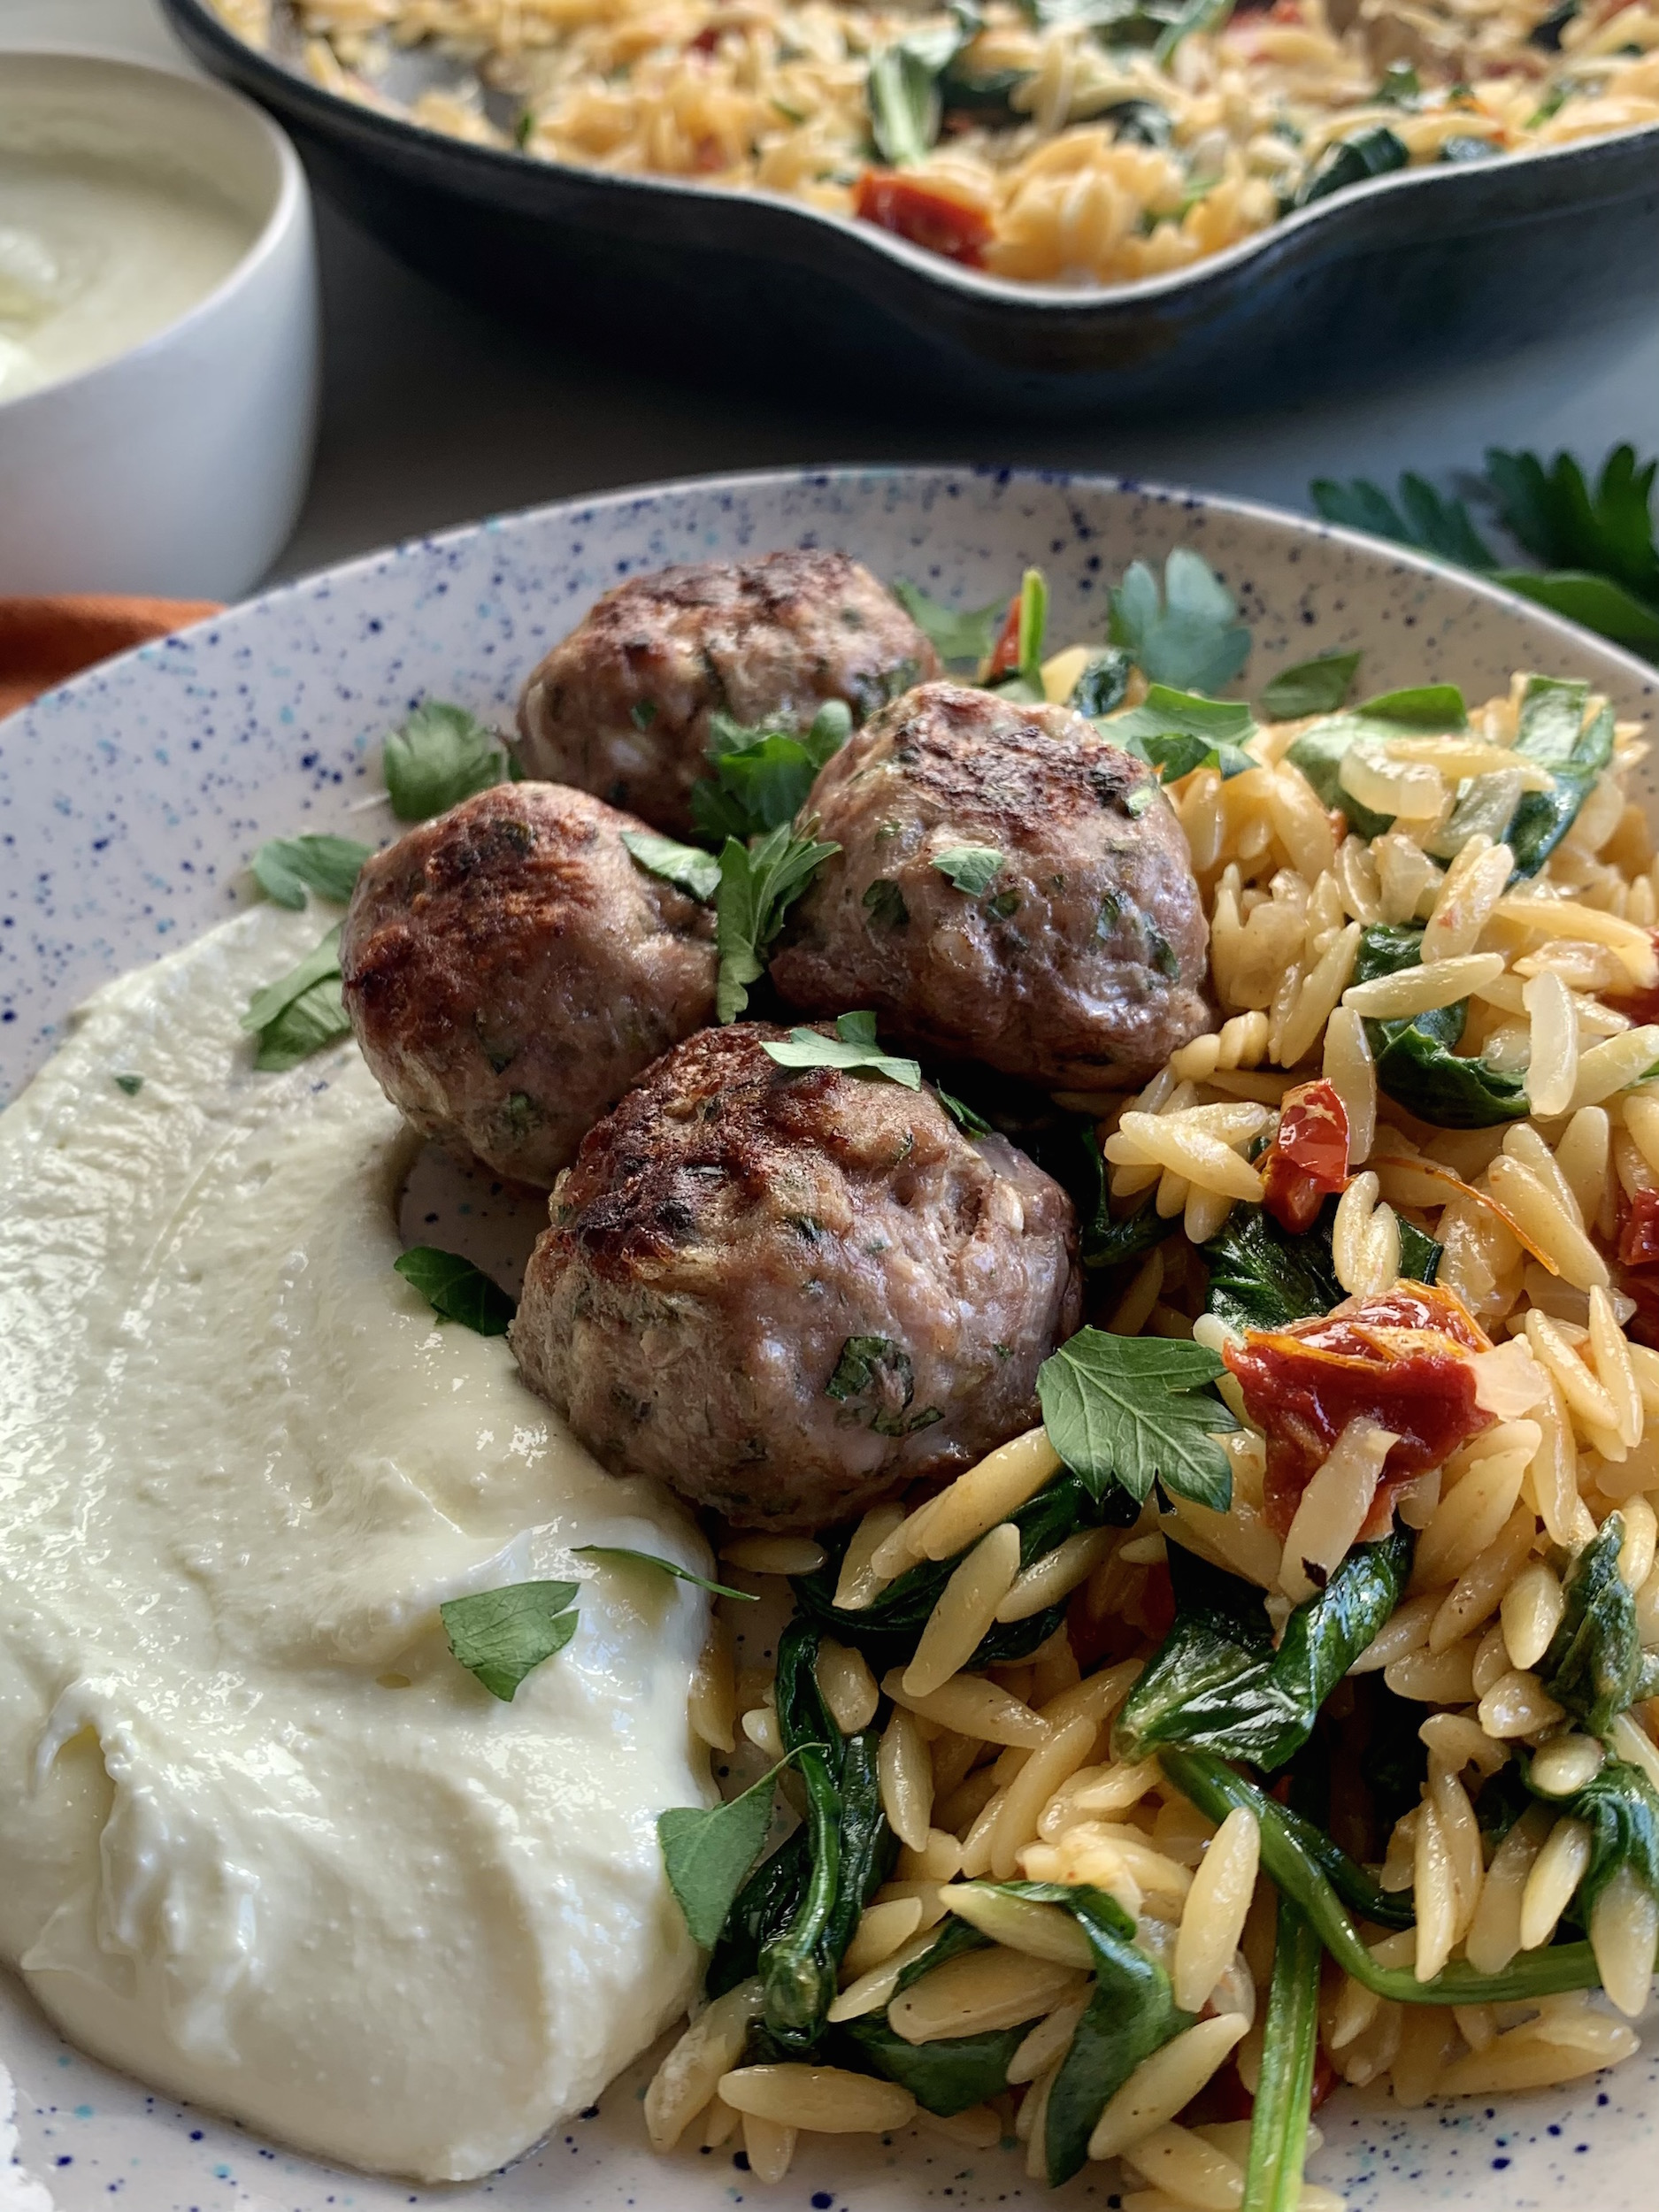 Speckled plate with greek meatballs, orzo and whipped feta with skillet and bowl in the background